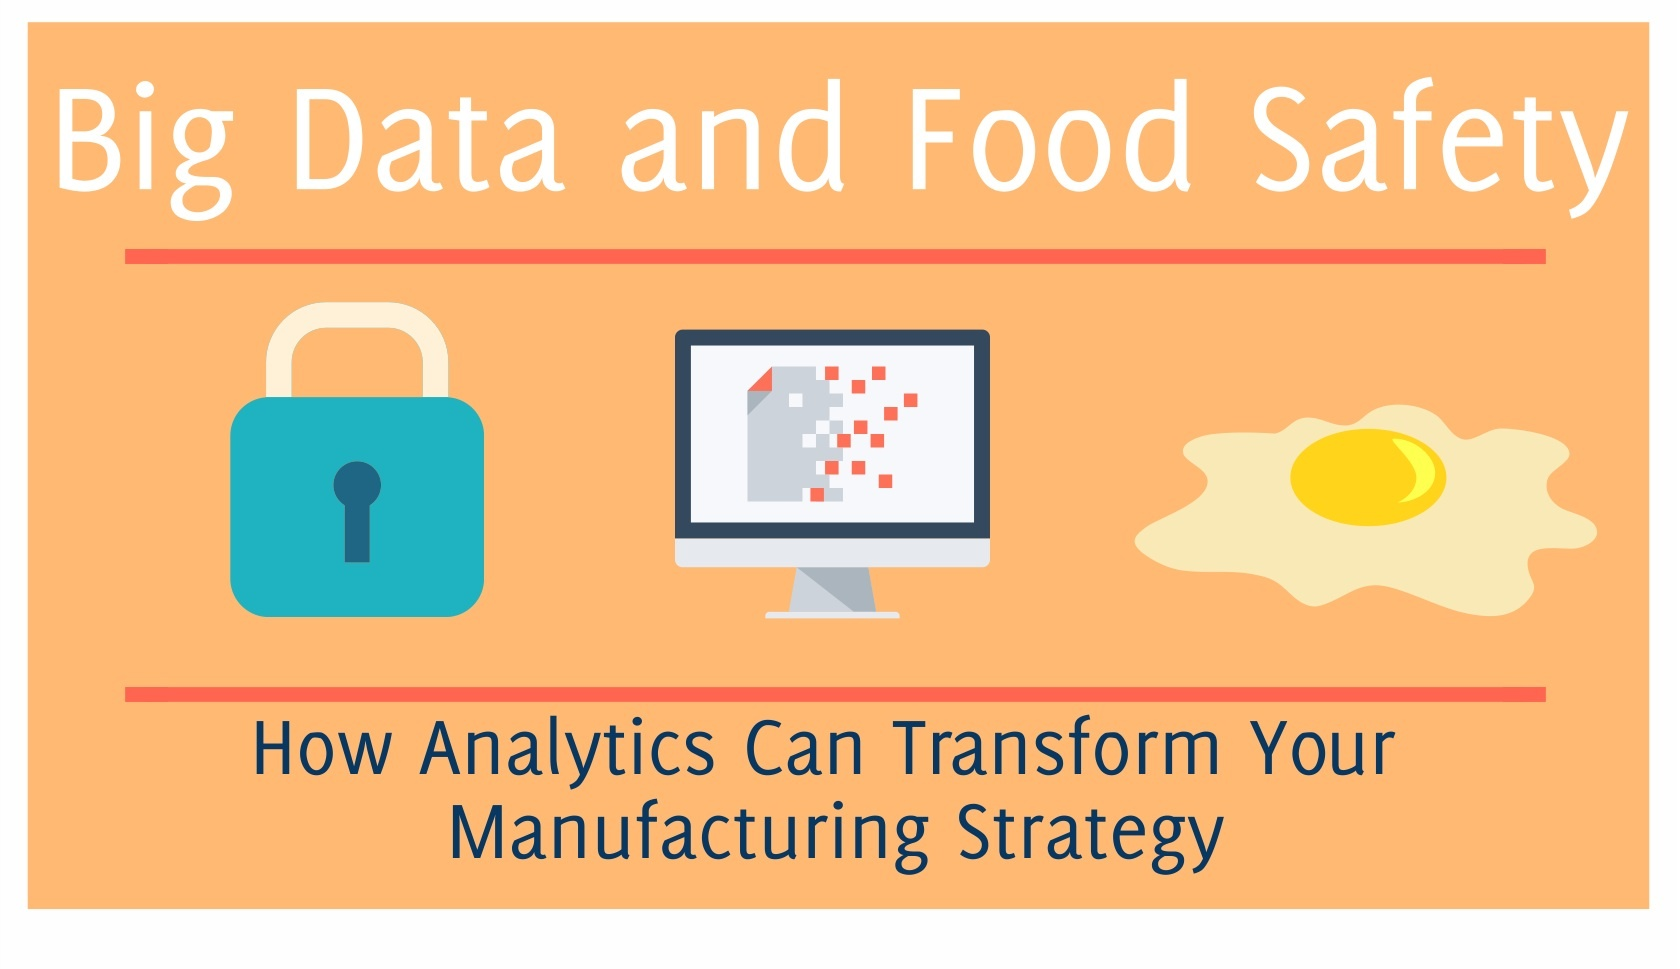 Big Data and Food Safety